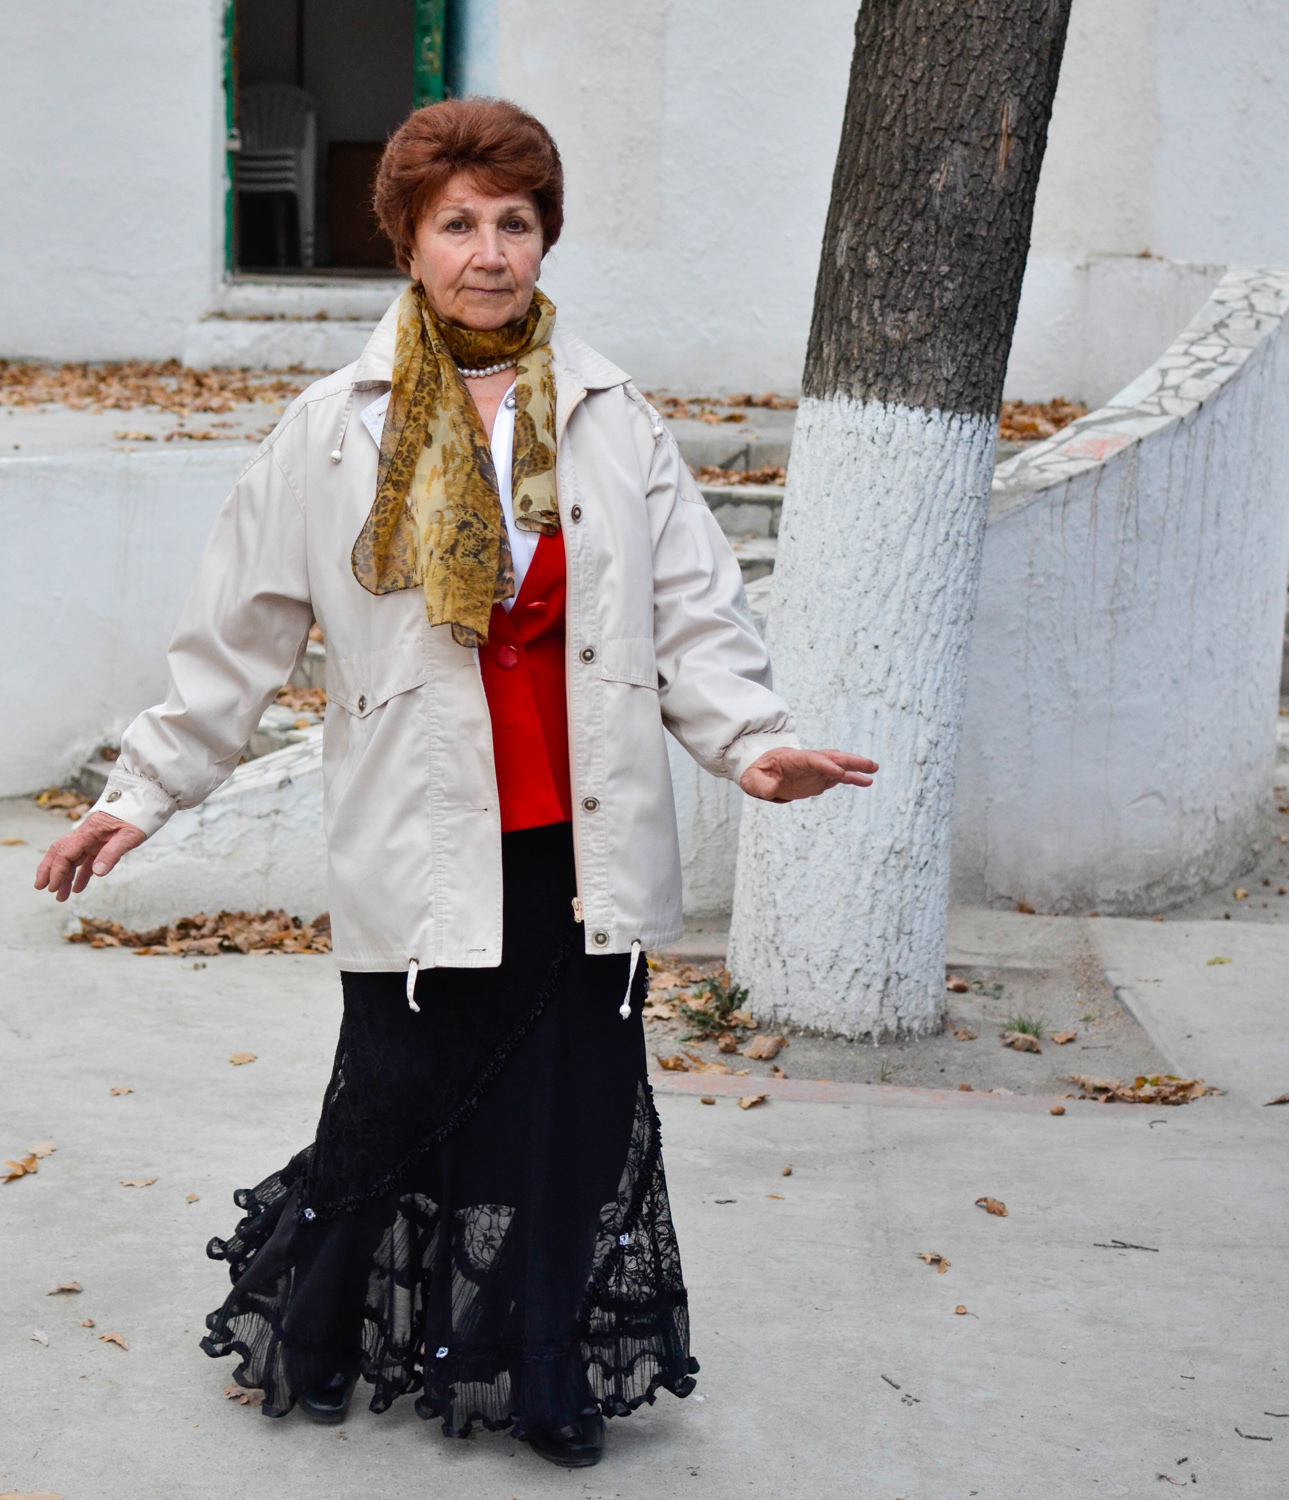 Member of the 40+ club in Bishkek, where dozens of seniors gather to dance in the park every week.